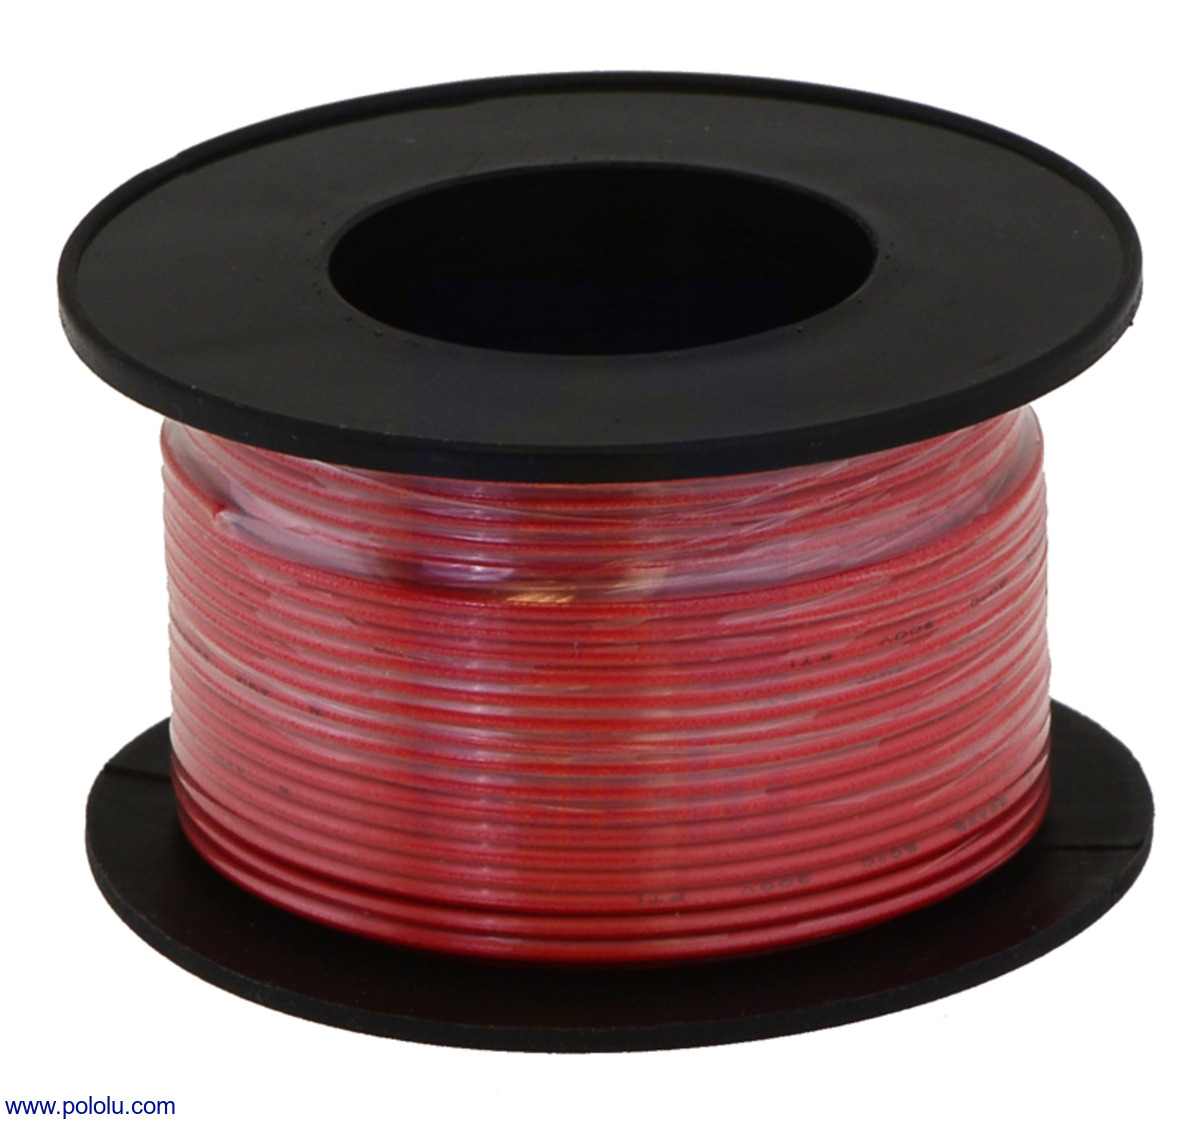 40 gauge stranded wire wire center pololu stranded wire red 20 awg 40 feet rh pololu com stranded wire gauge diameter chart stranded wire gauge diameter chart greentooth